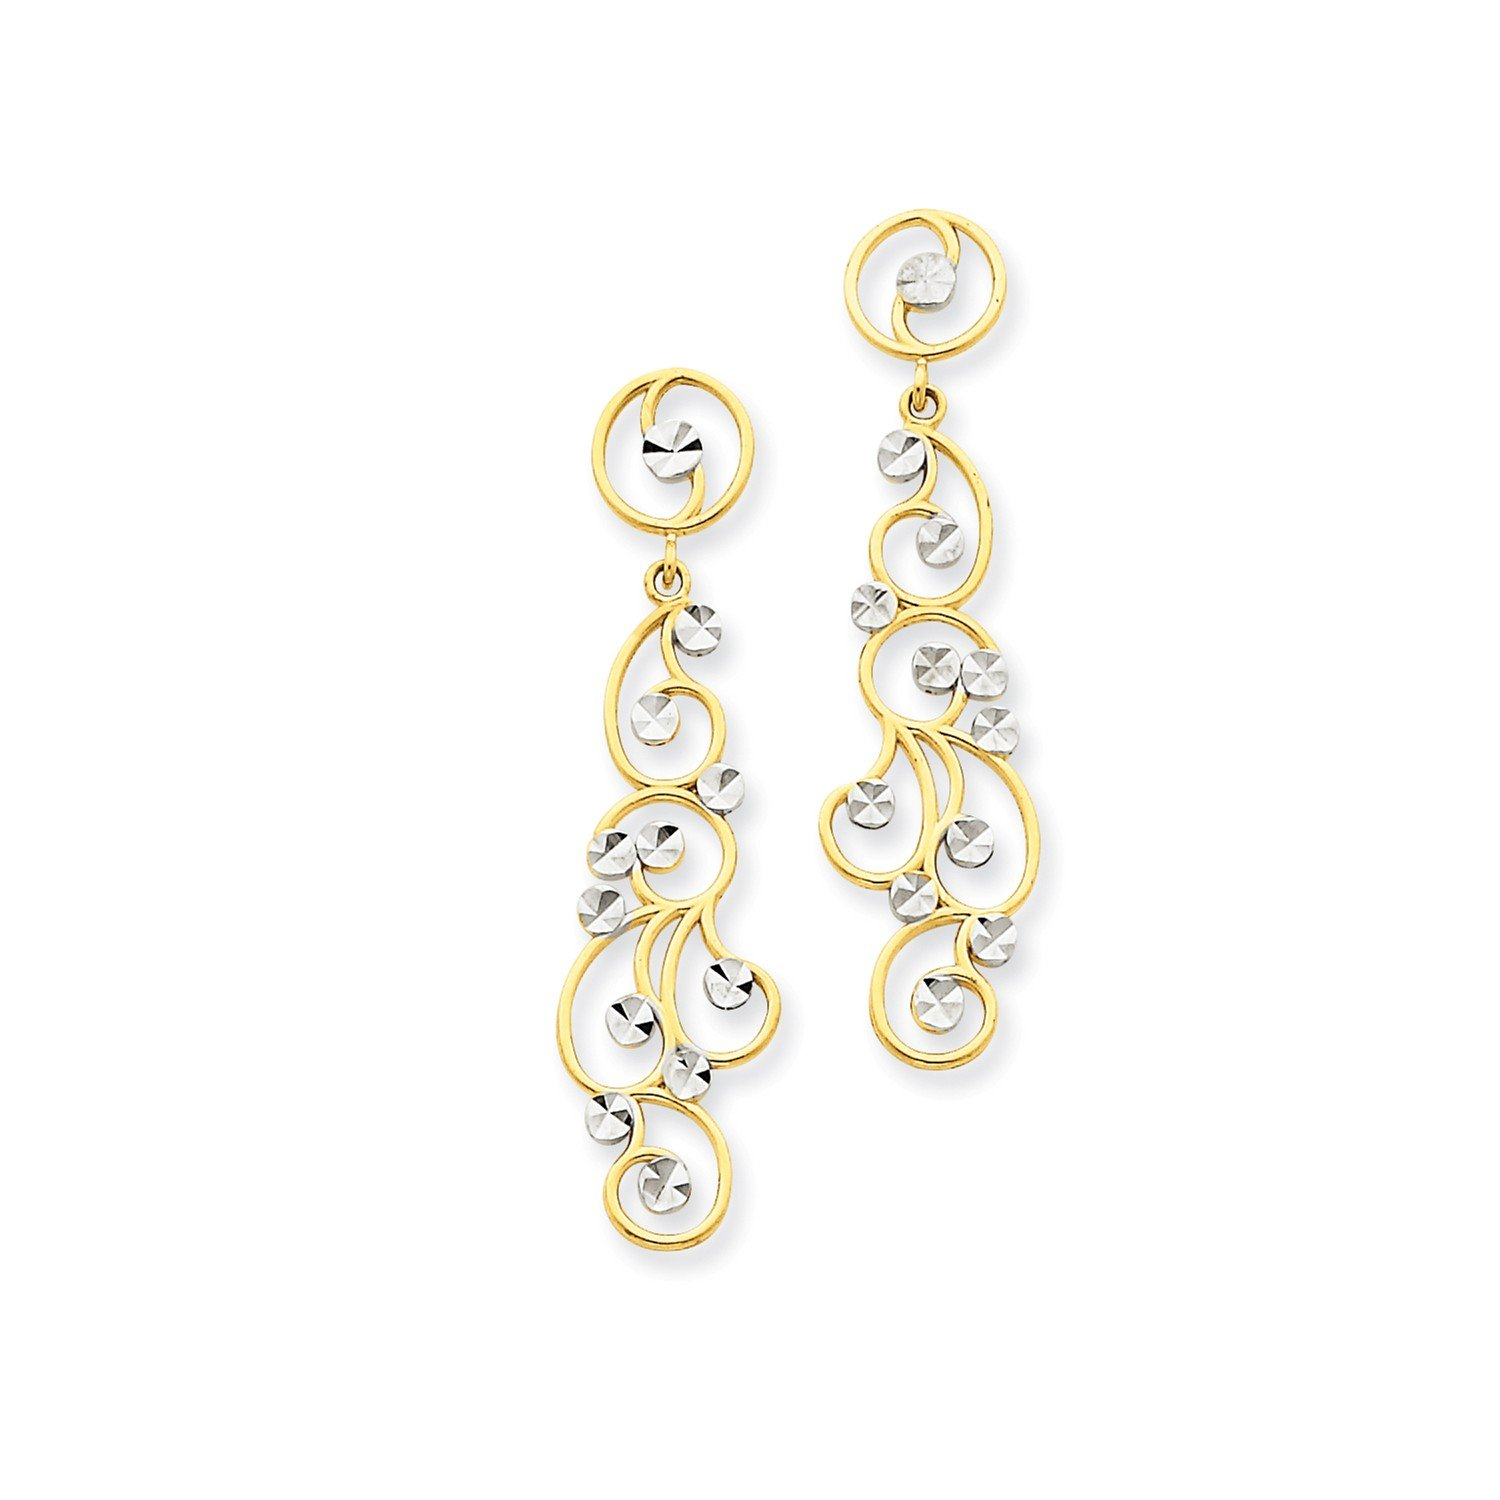 Roy Rose Jewelry 14K Yellow Gold and Rhodium Filigree Dangle Earrings